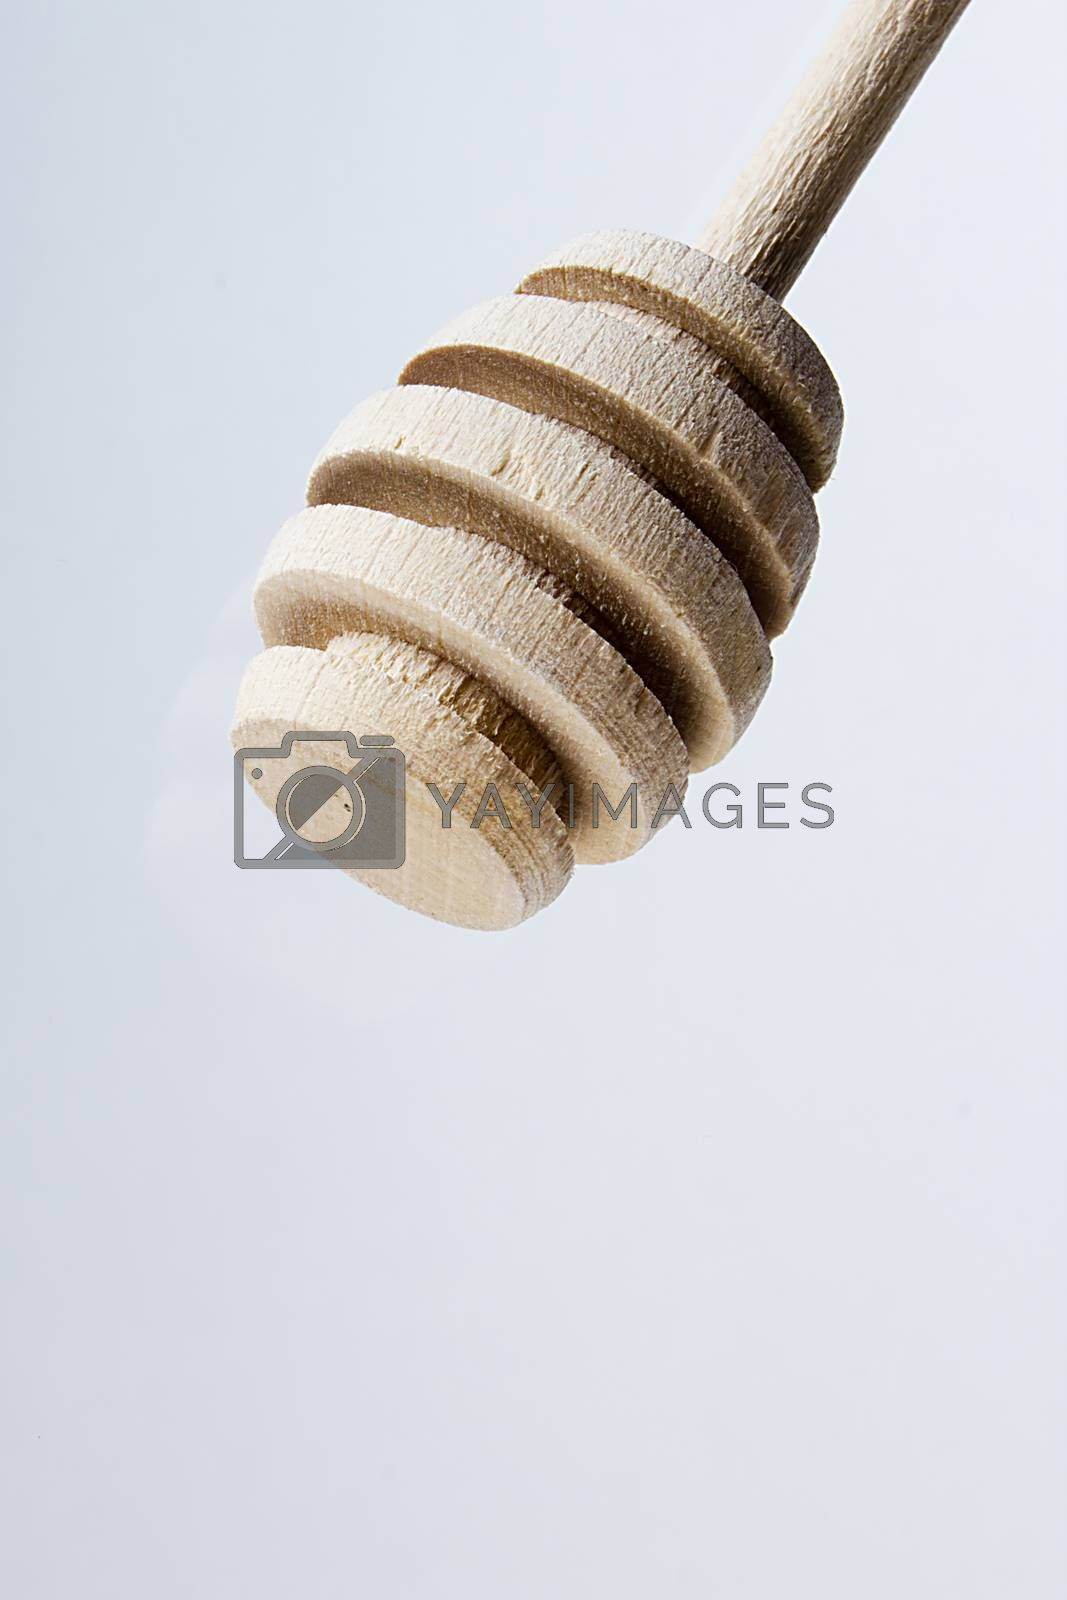 Traditional wooden honey dipper on a gray background